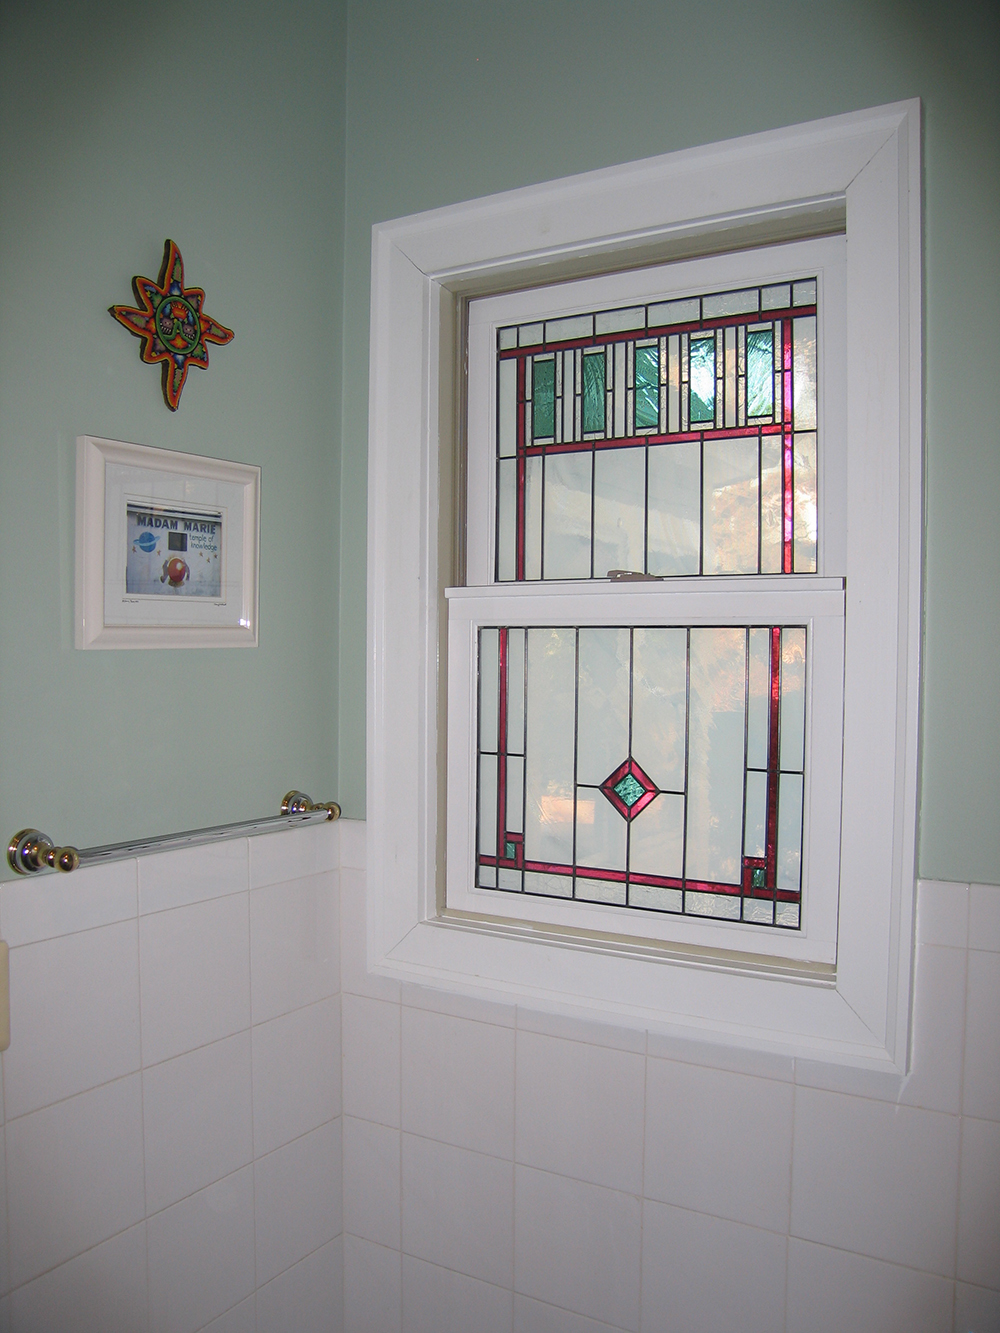 Bathroom window stained glass film bathroom stained glass for Decorative windows for bathrooms